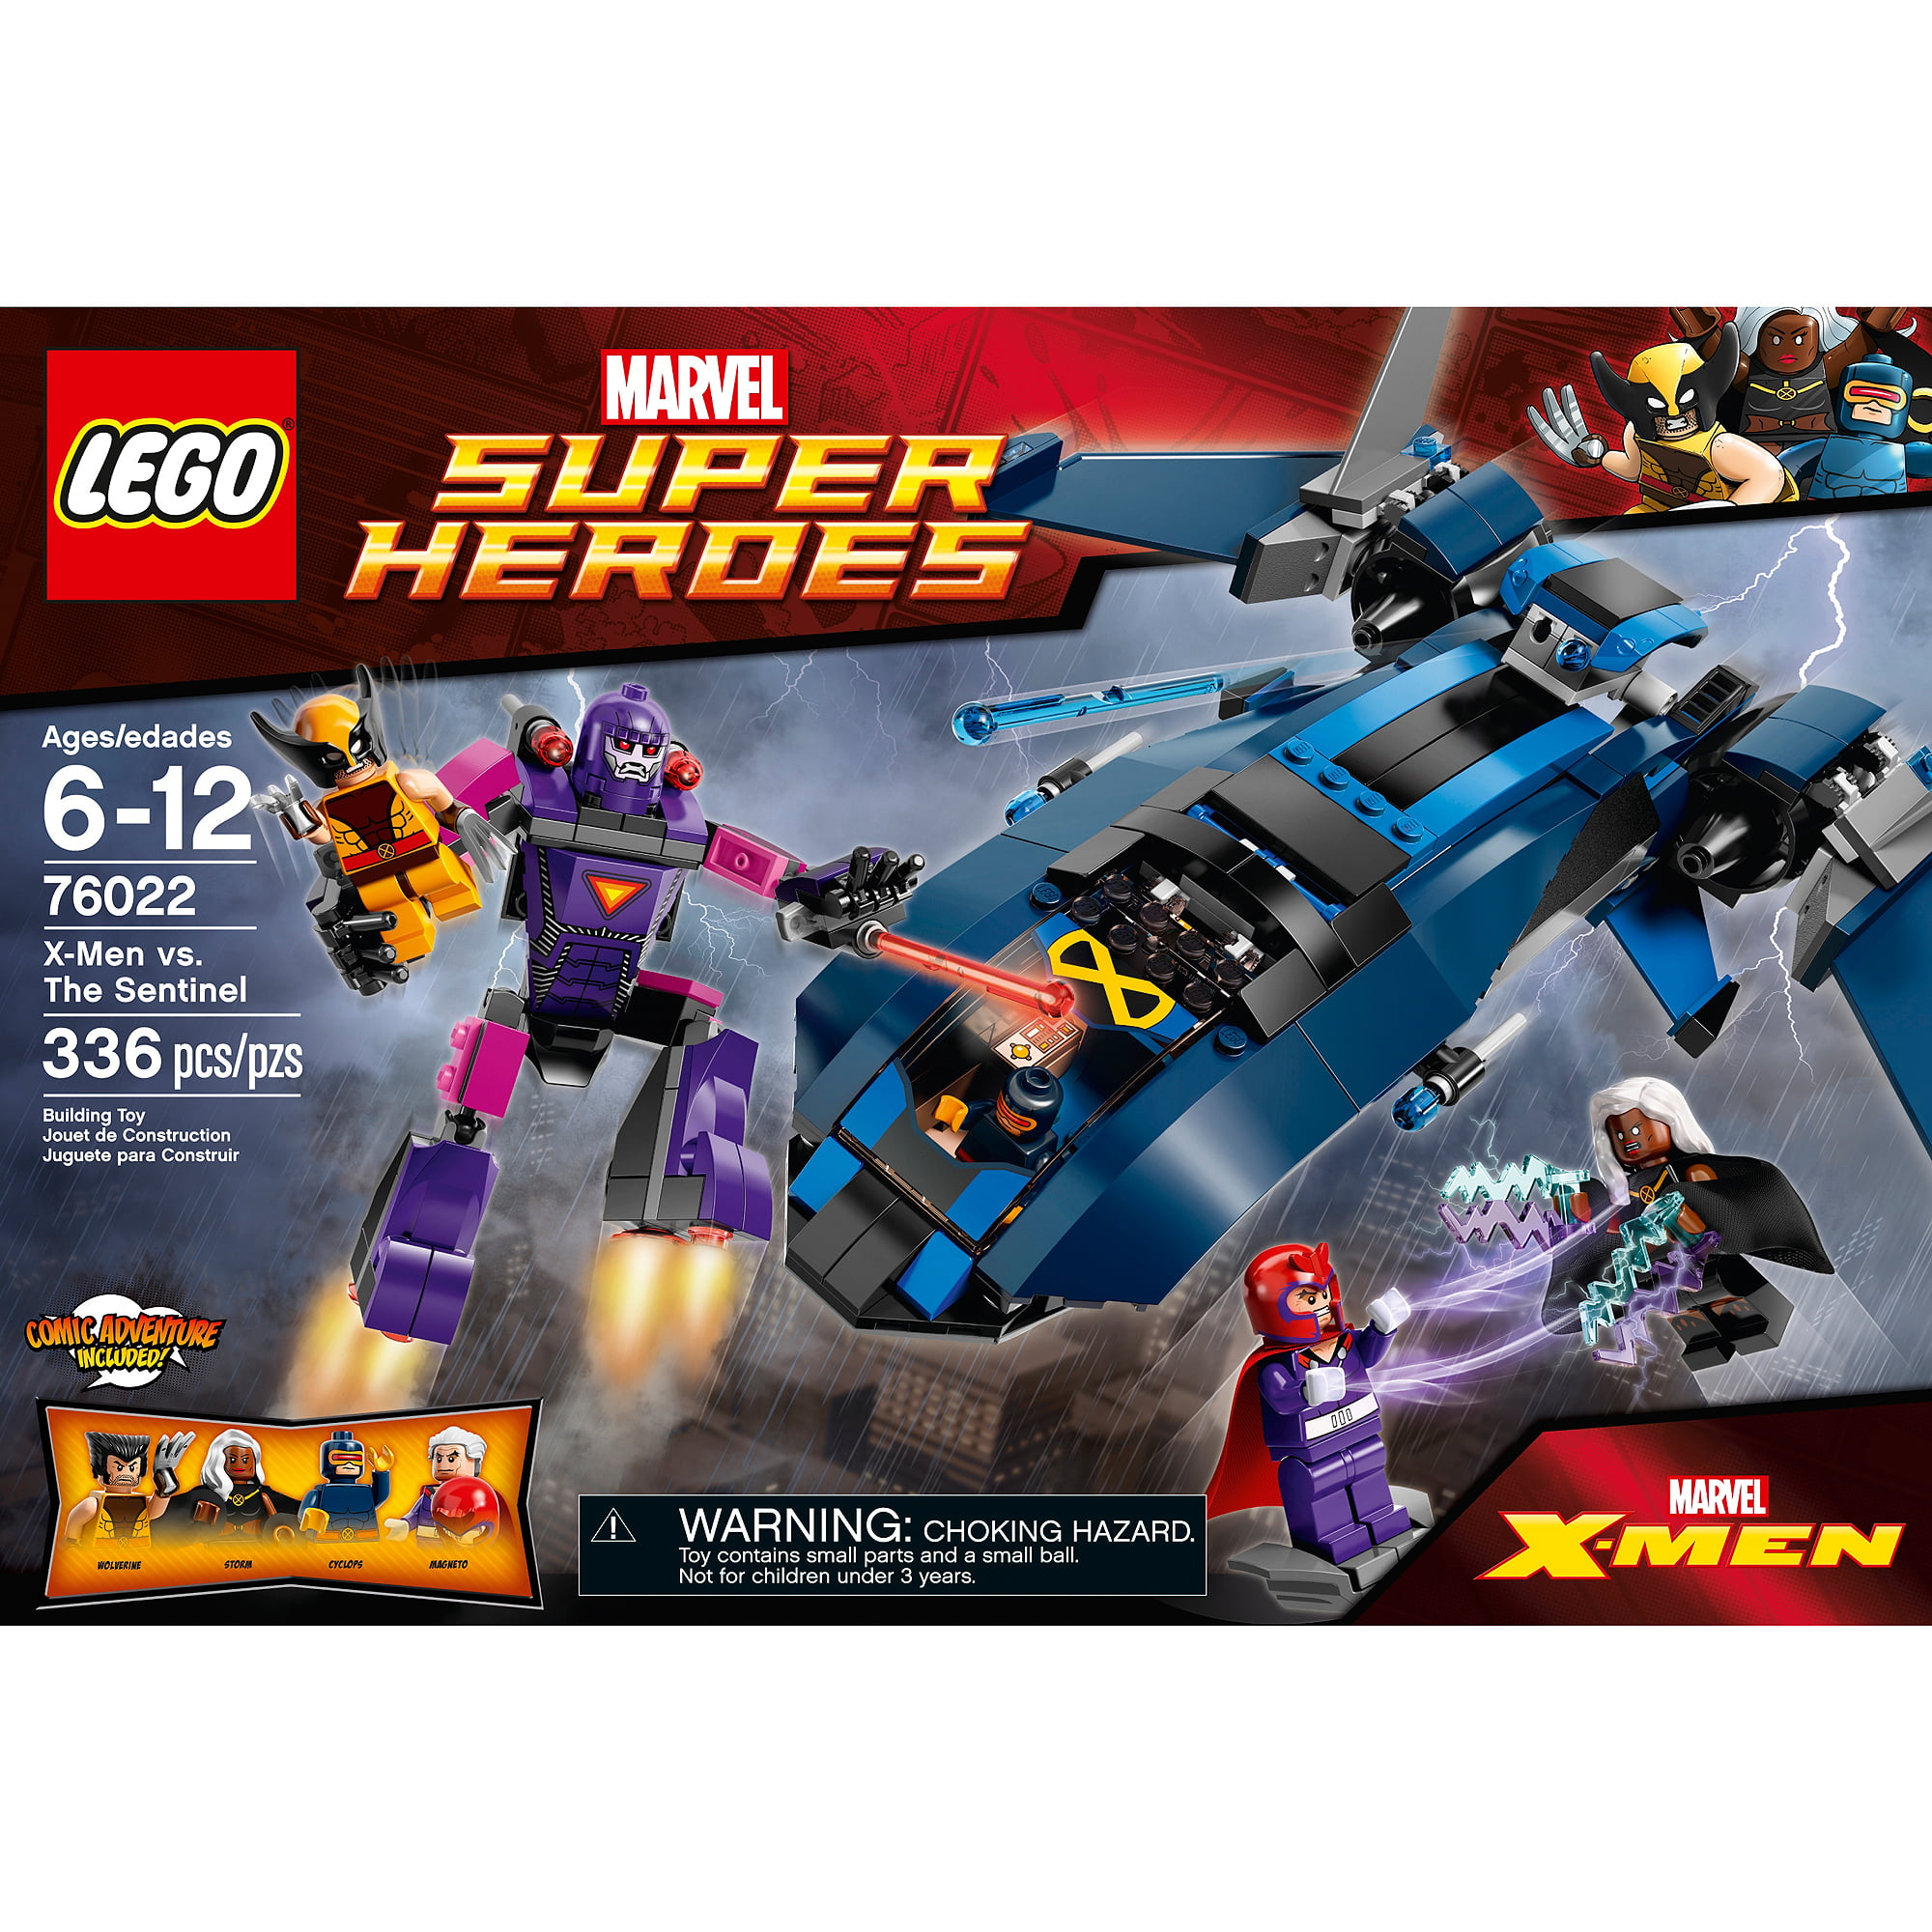 Lego Super Heroes X-Men vs. The Sentinel by Lego